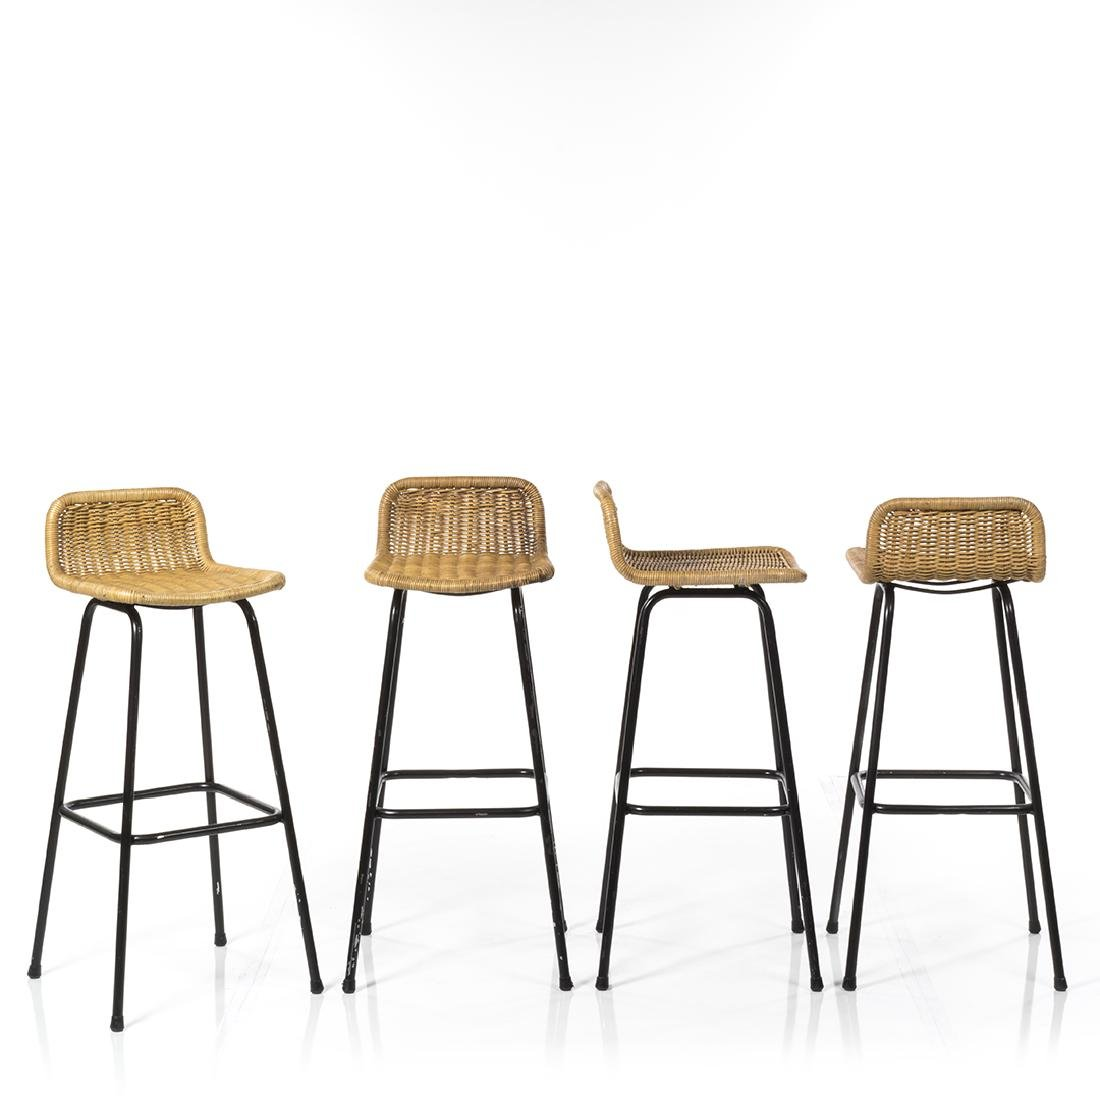 Charlotte Perriand Style Stools (4) - 2